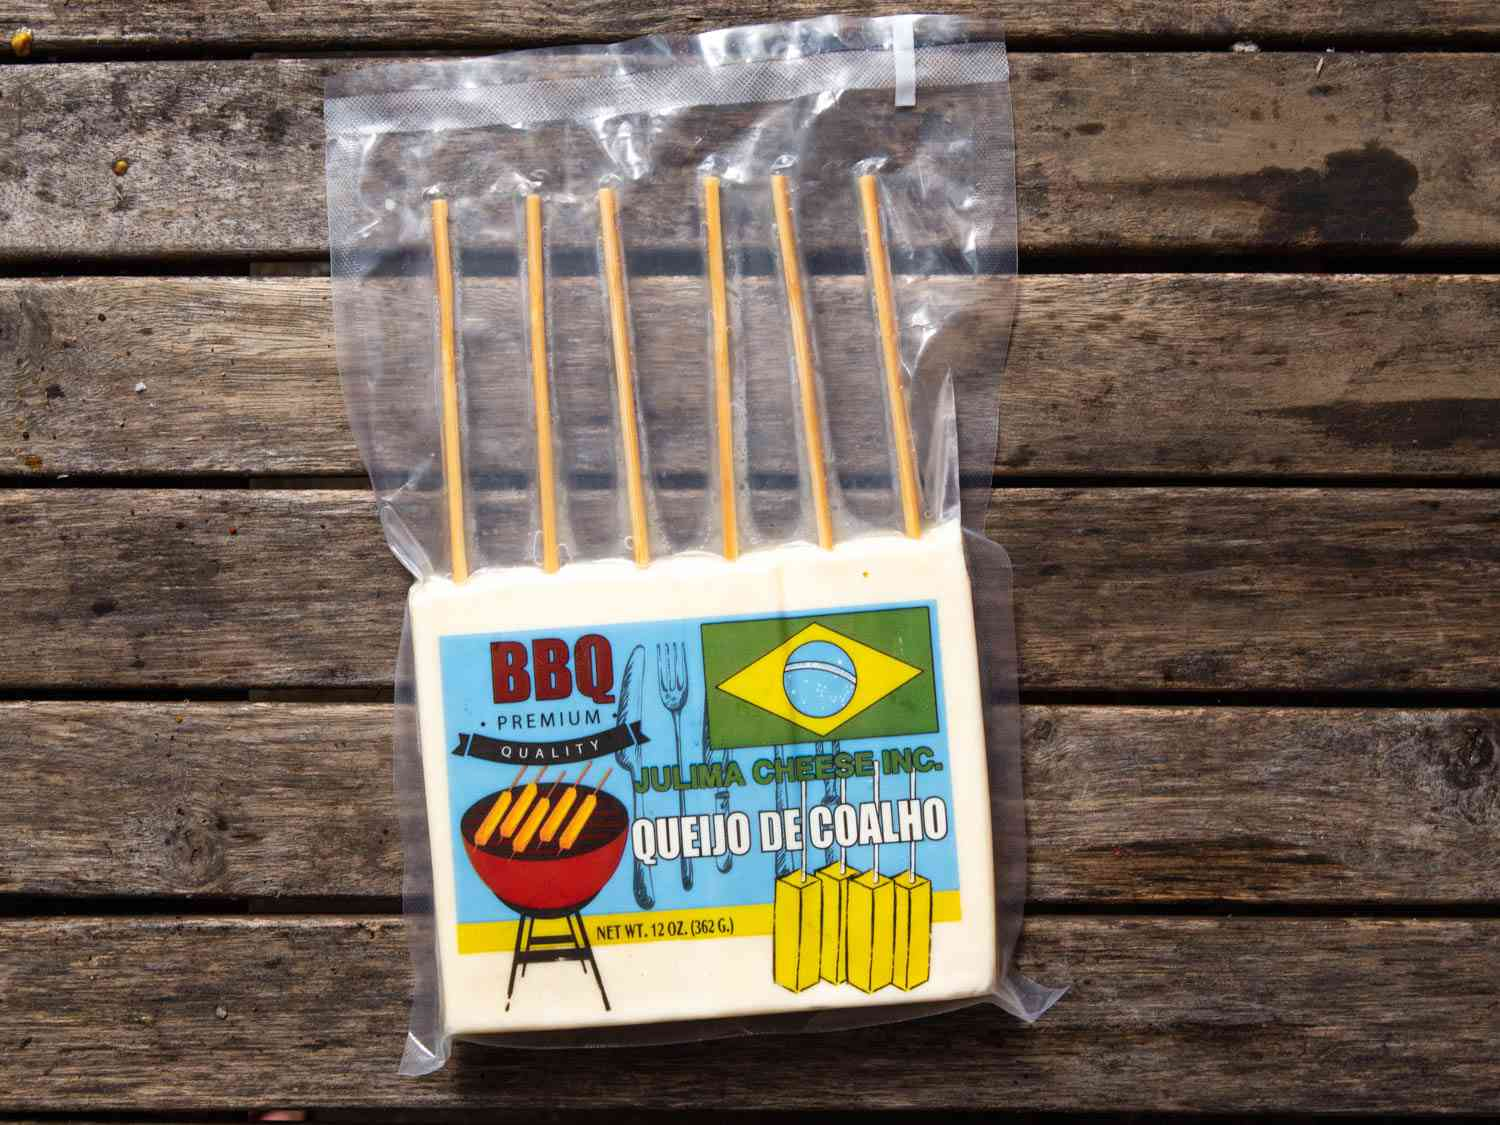 A shrink-wrapped package of queijo coalho em espetos, Brazilian cheese skewers, on a table